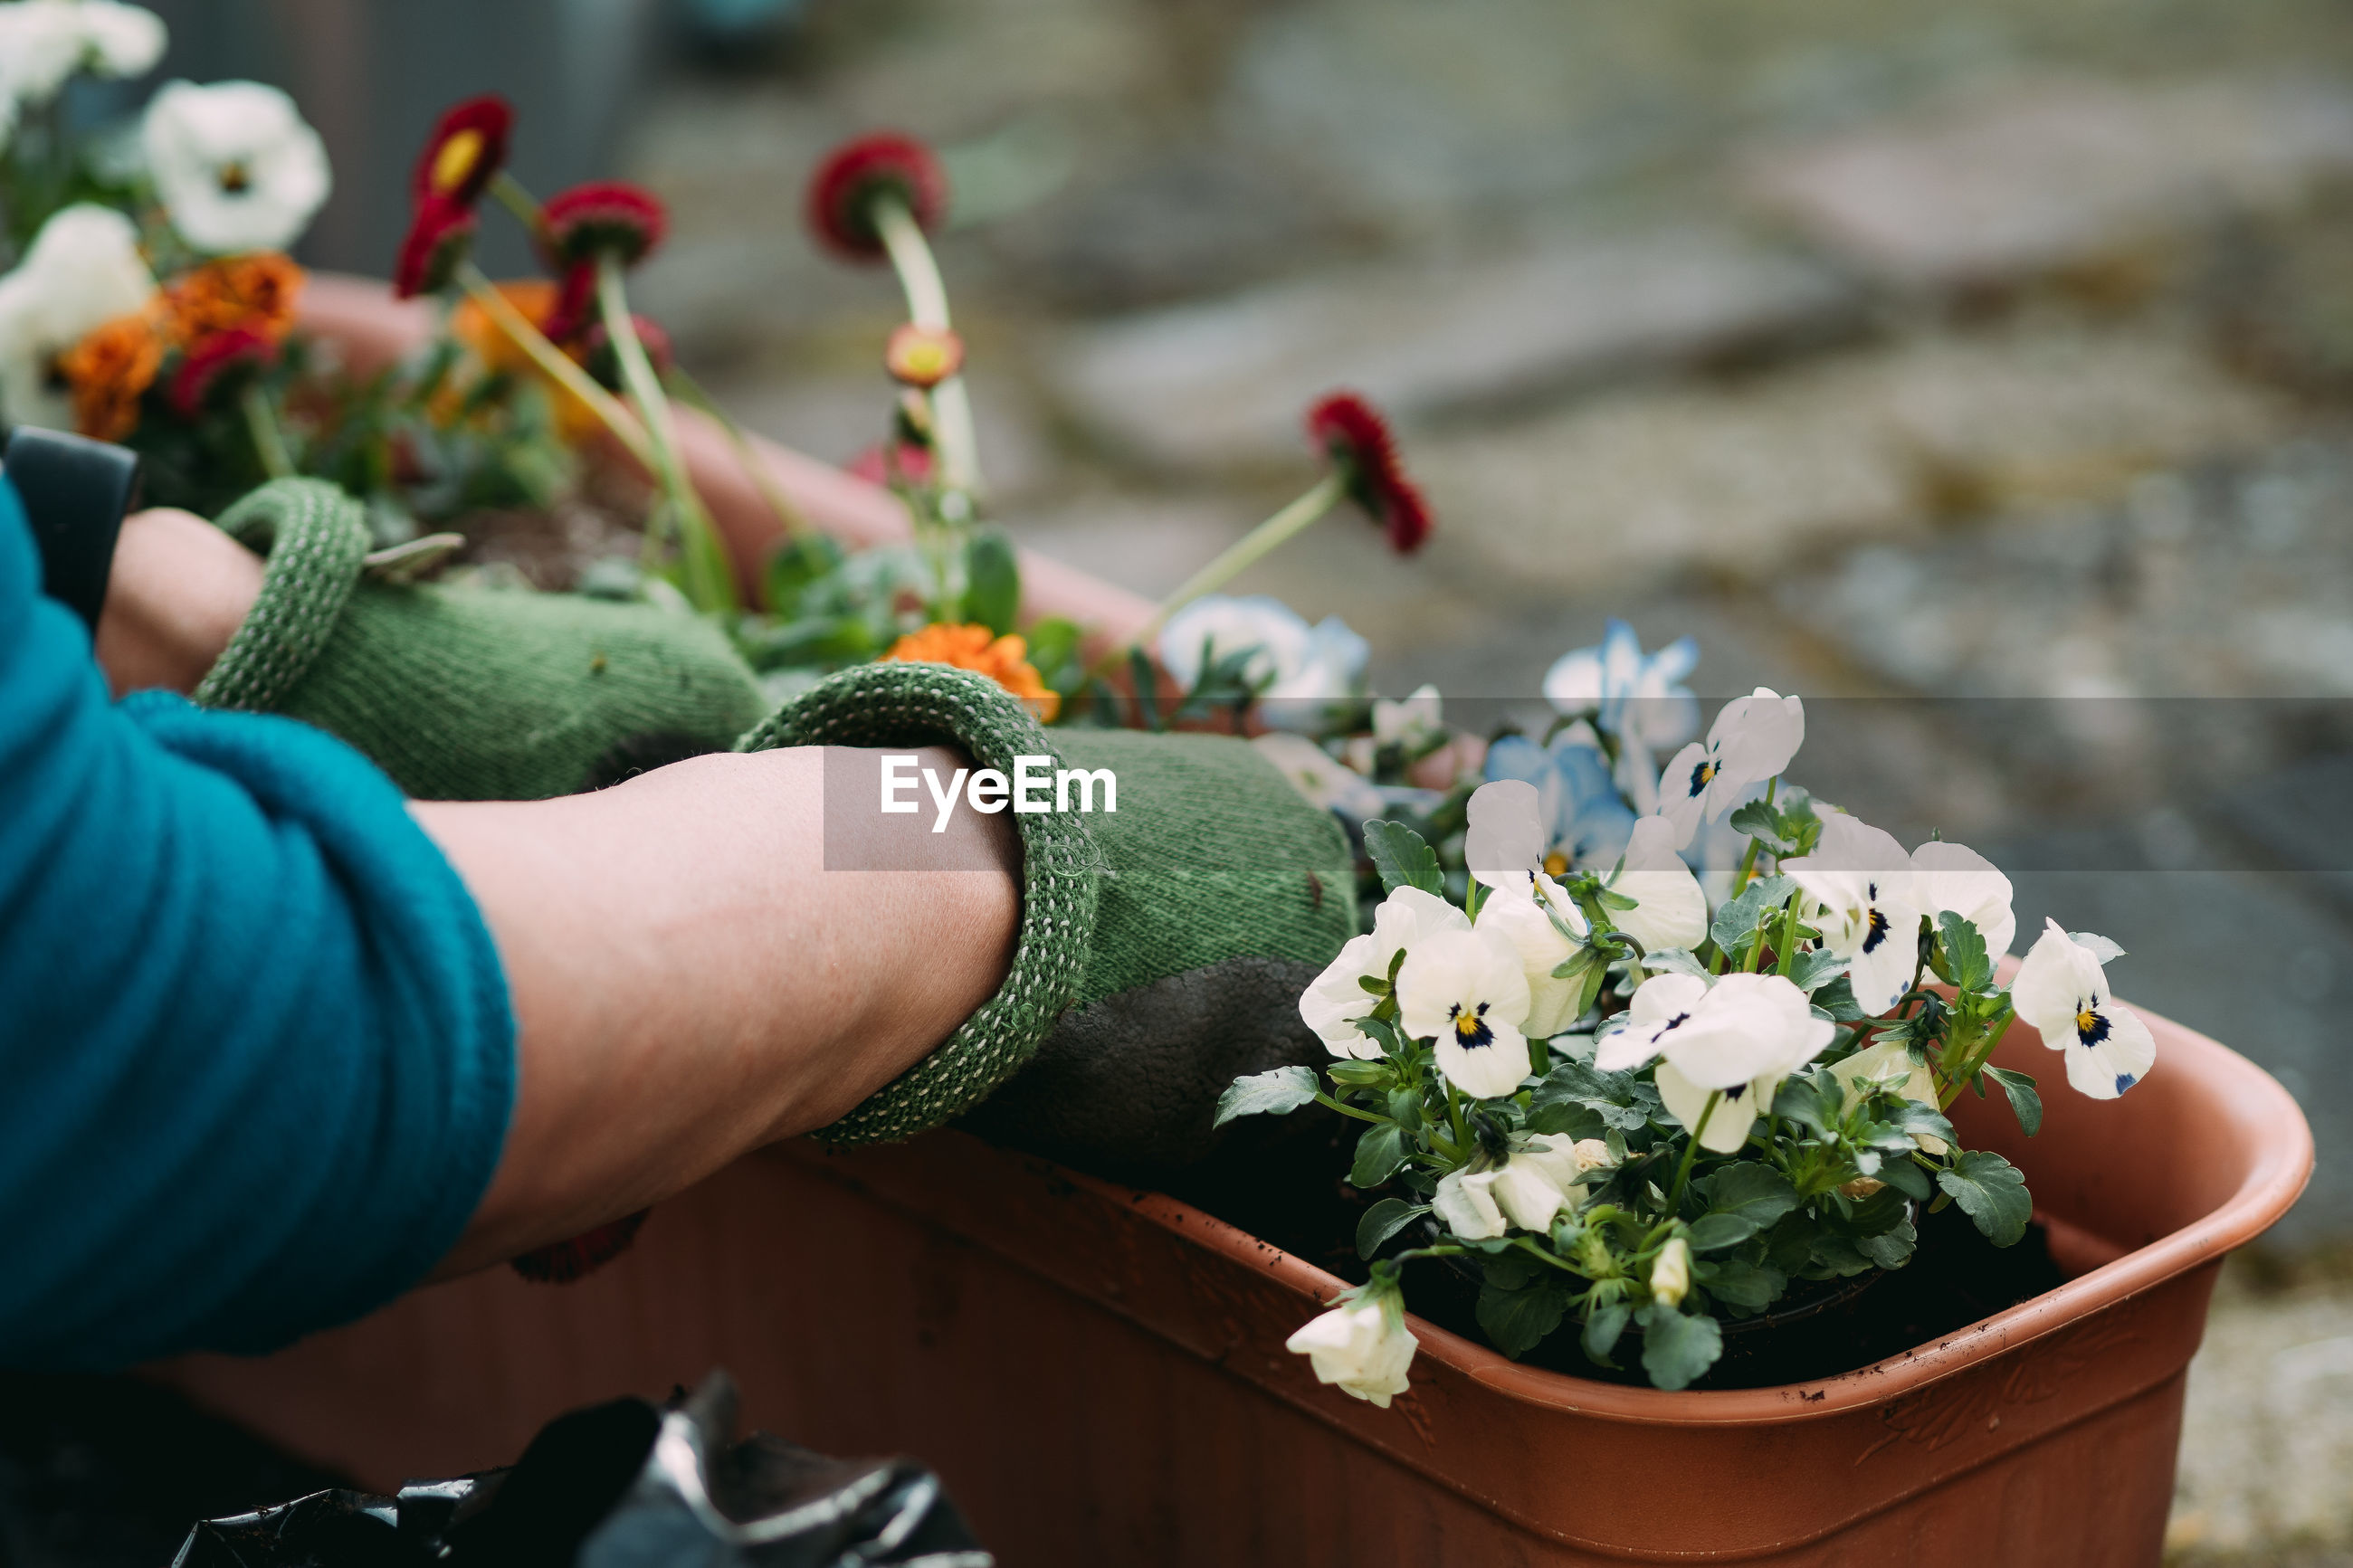 Cropped hands planting plants in pot